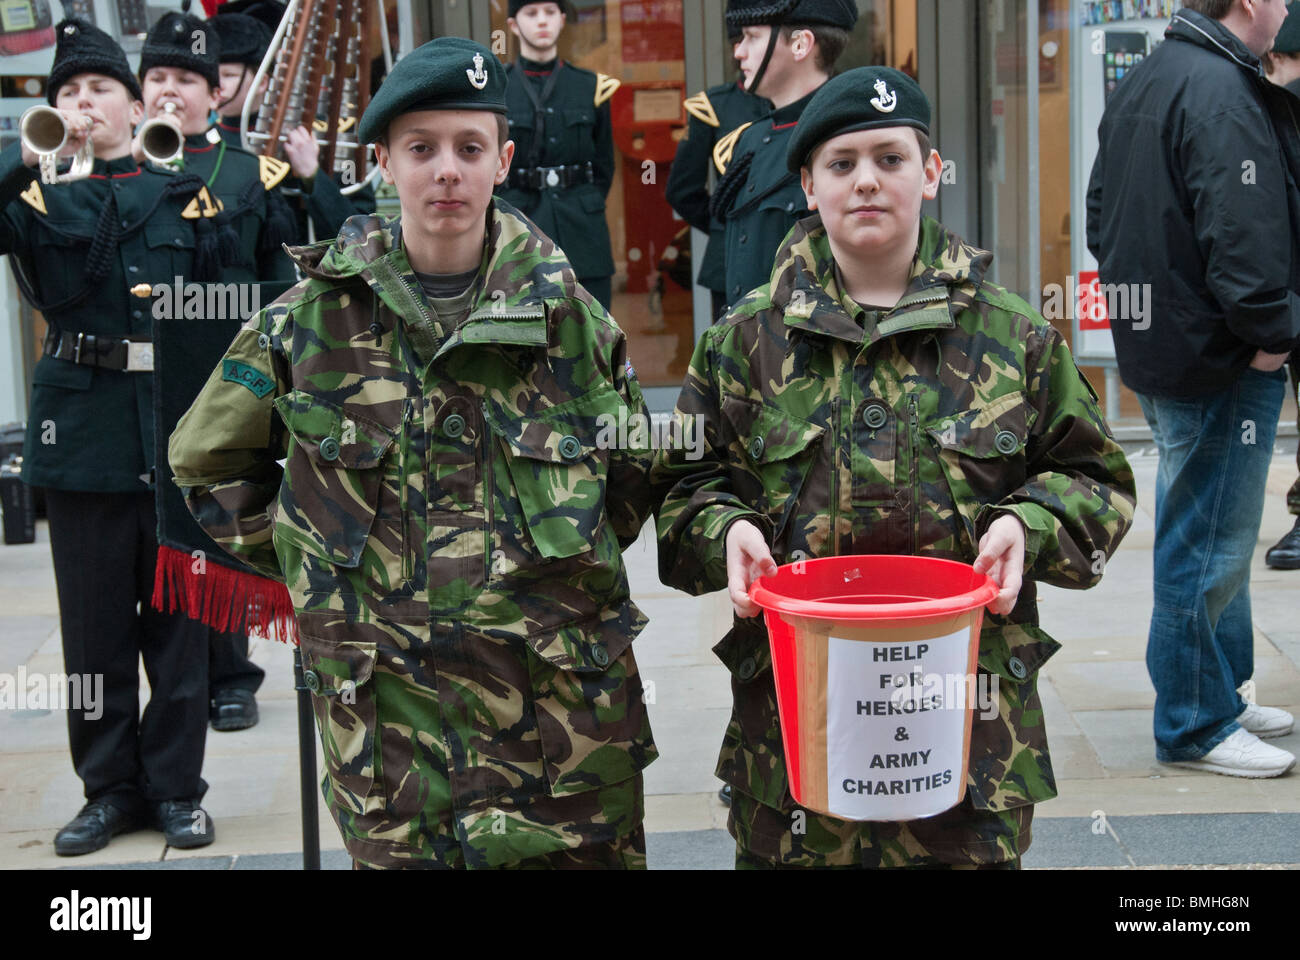 TWO YOUNG ARMY CADET COLLECTING MONEY TO SUPPORT BRITISH ARMY - Stock Image